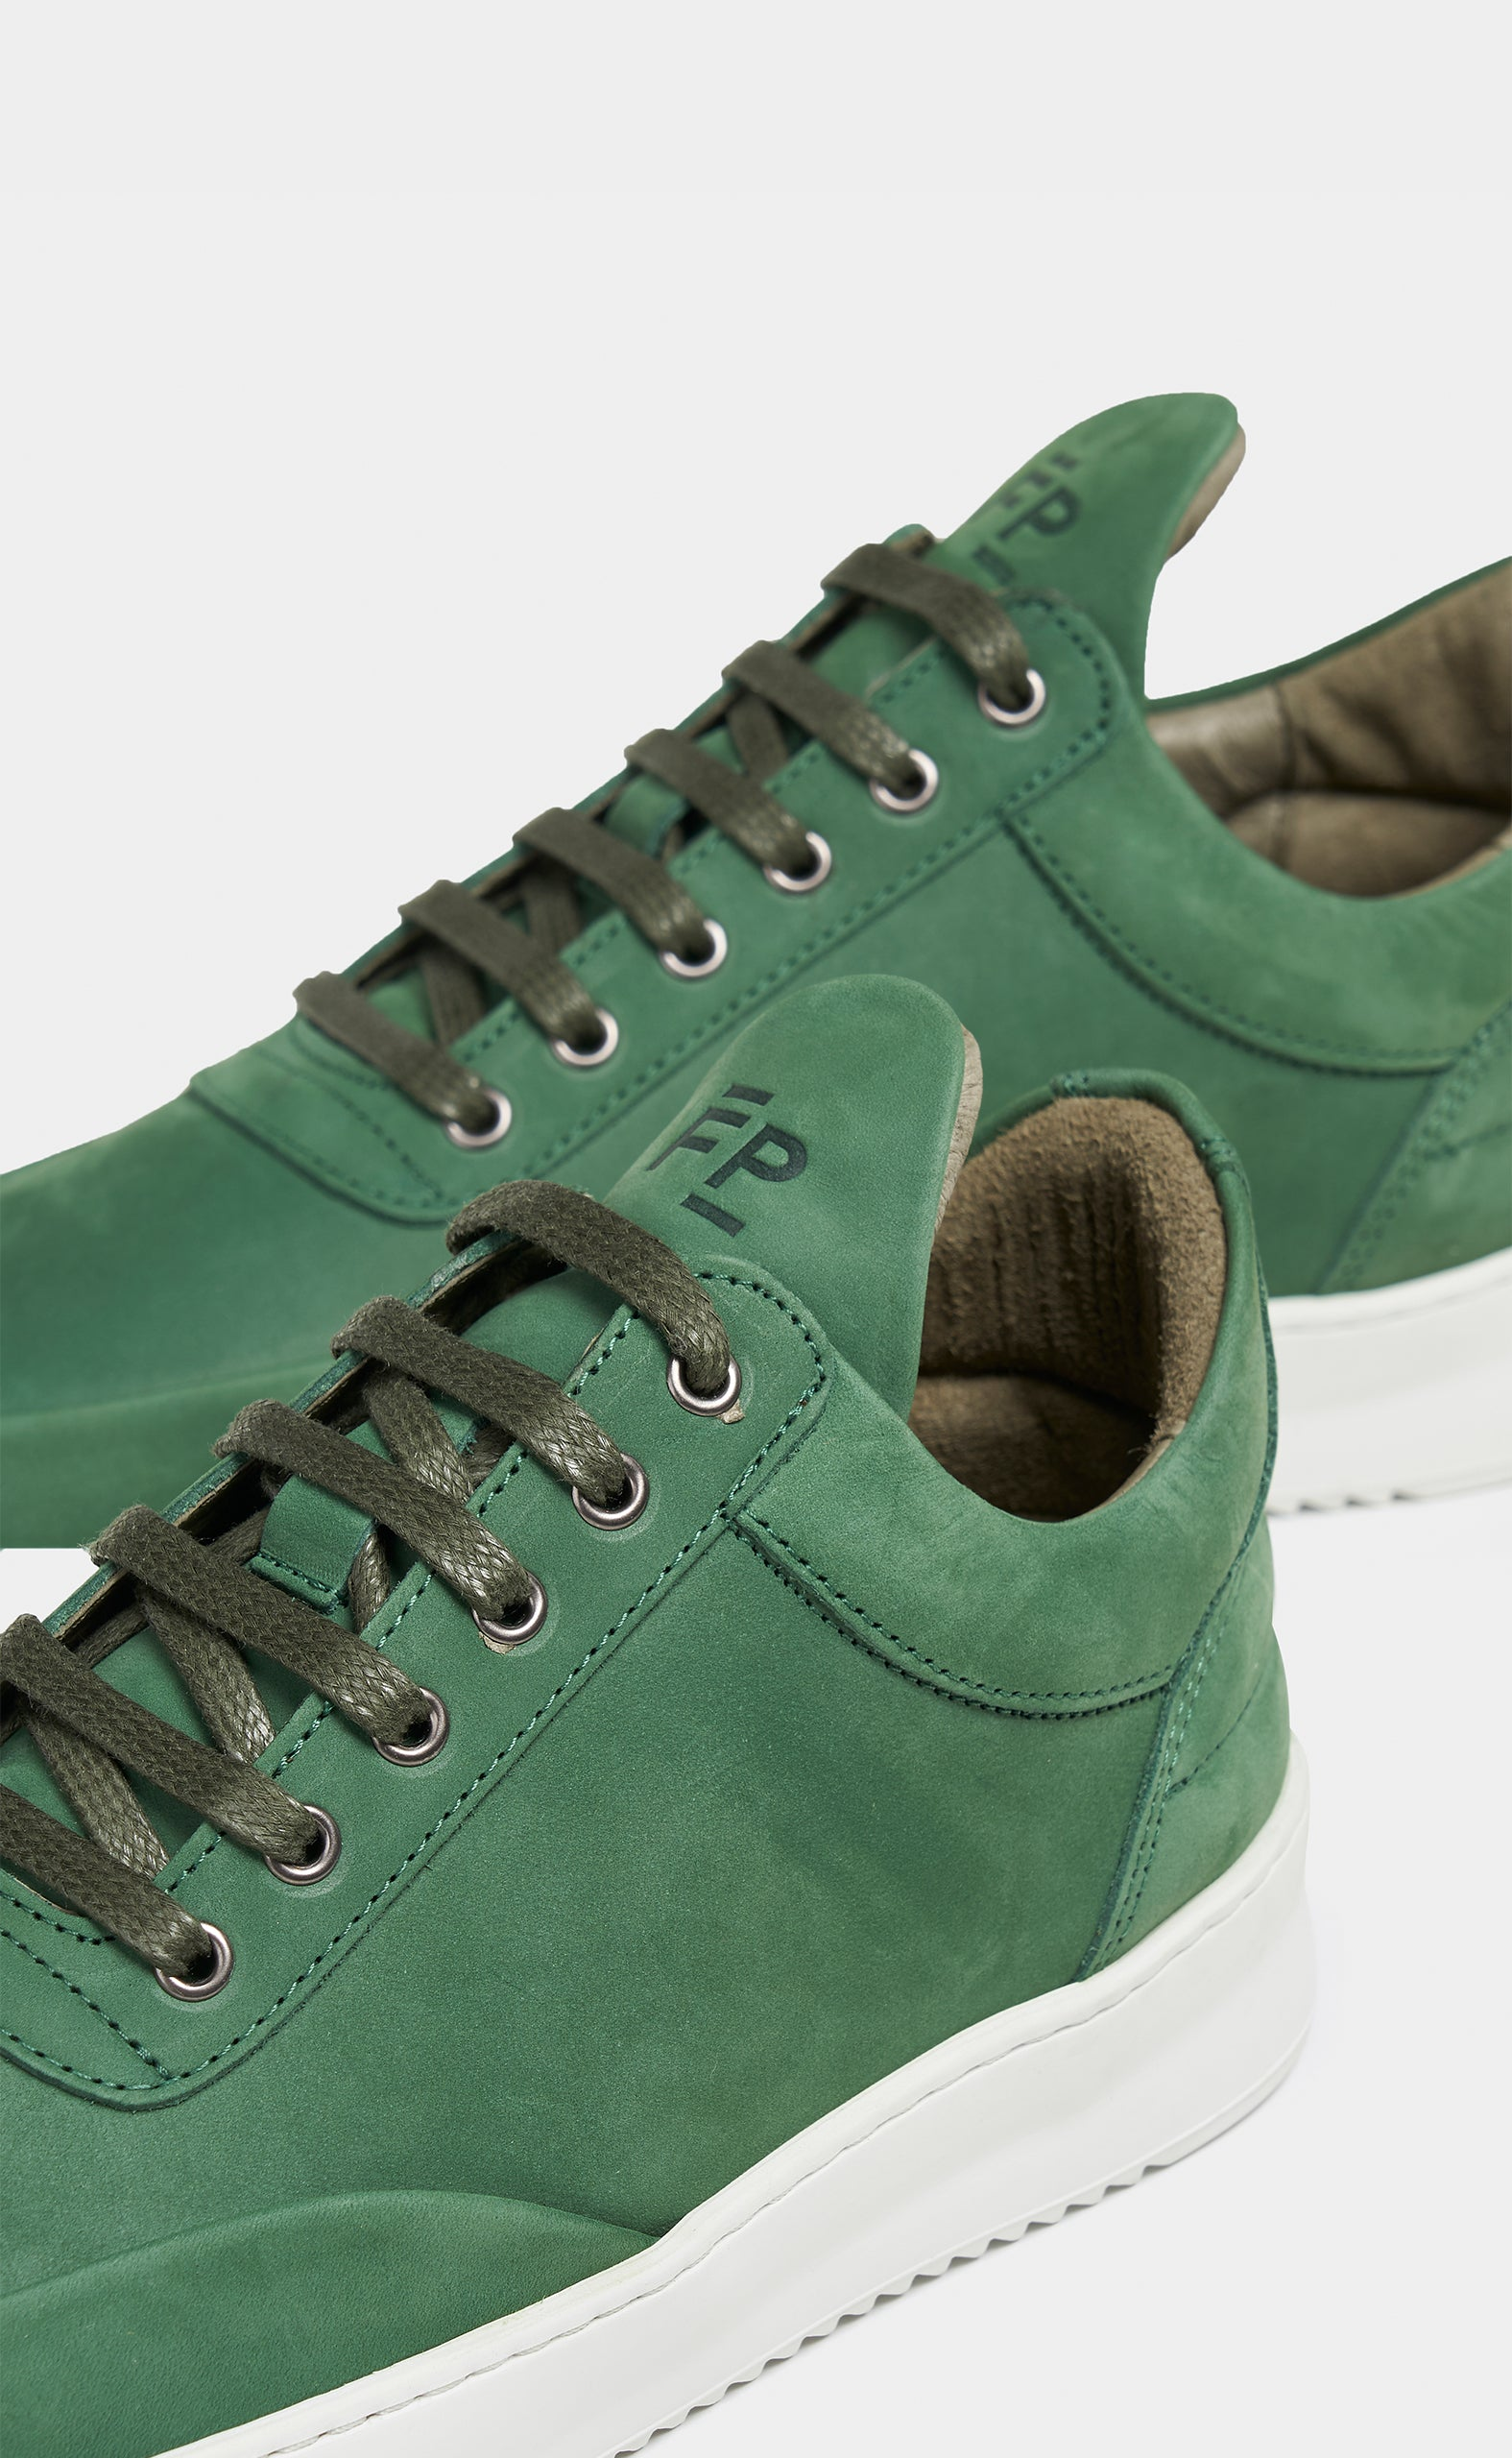 Low Top Ripple Grain Capsule Army Green